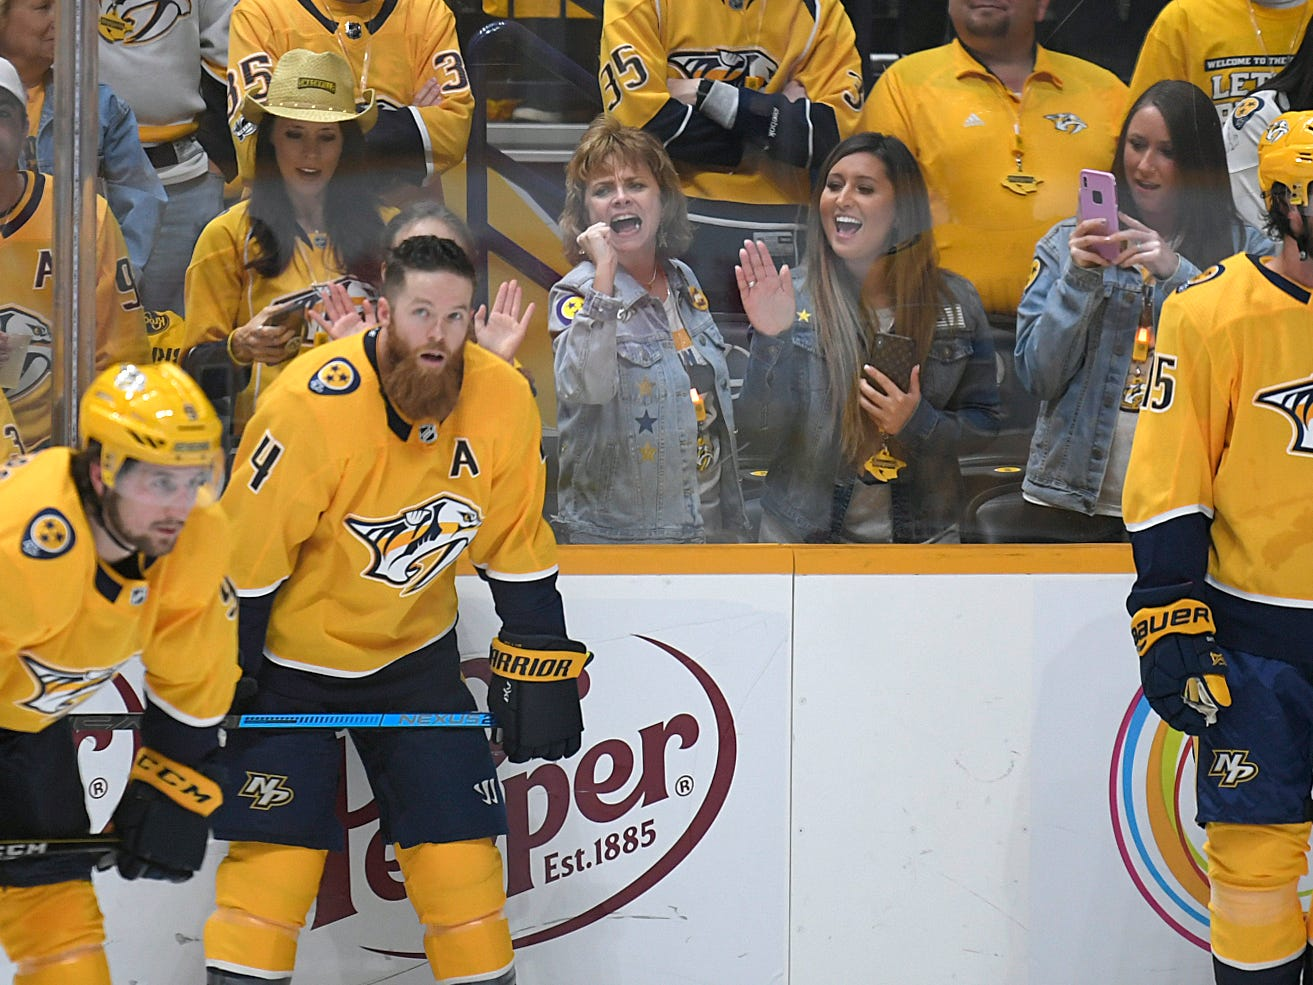 Fans cheer as the Predators take the ice for warm ups during divisional semifinal Stanley Cup playoff game at Bridgestone Arena in Nashville on Wednesday, April 10, 2019.